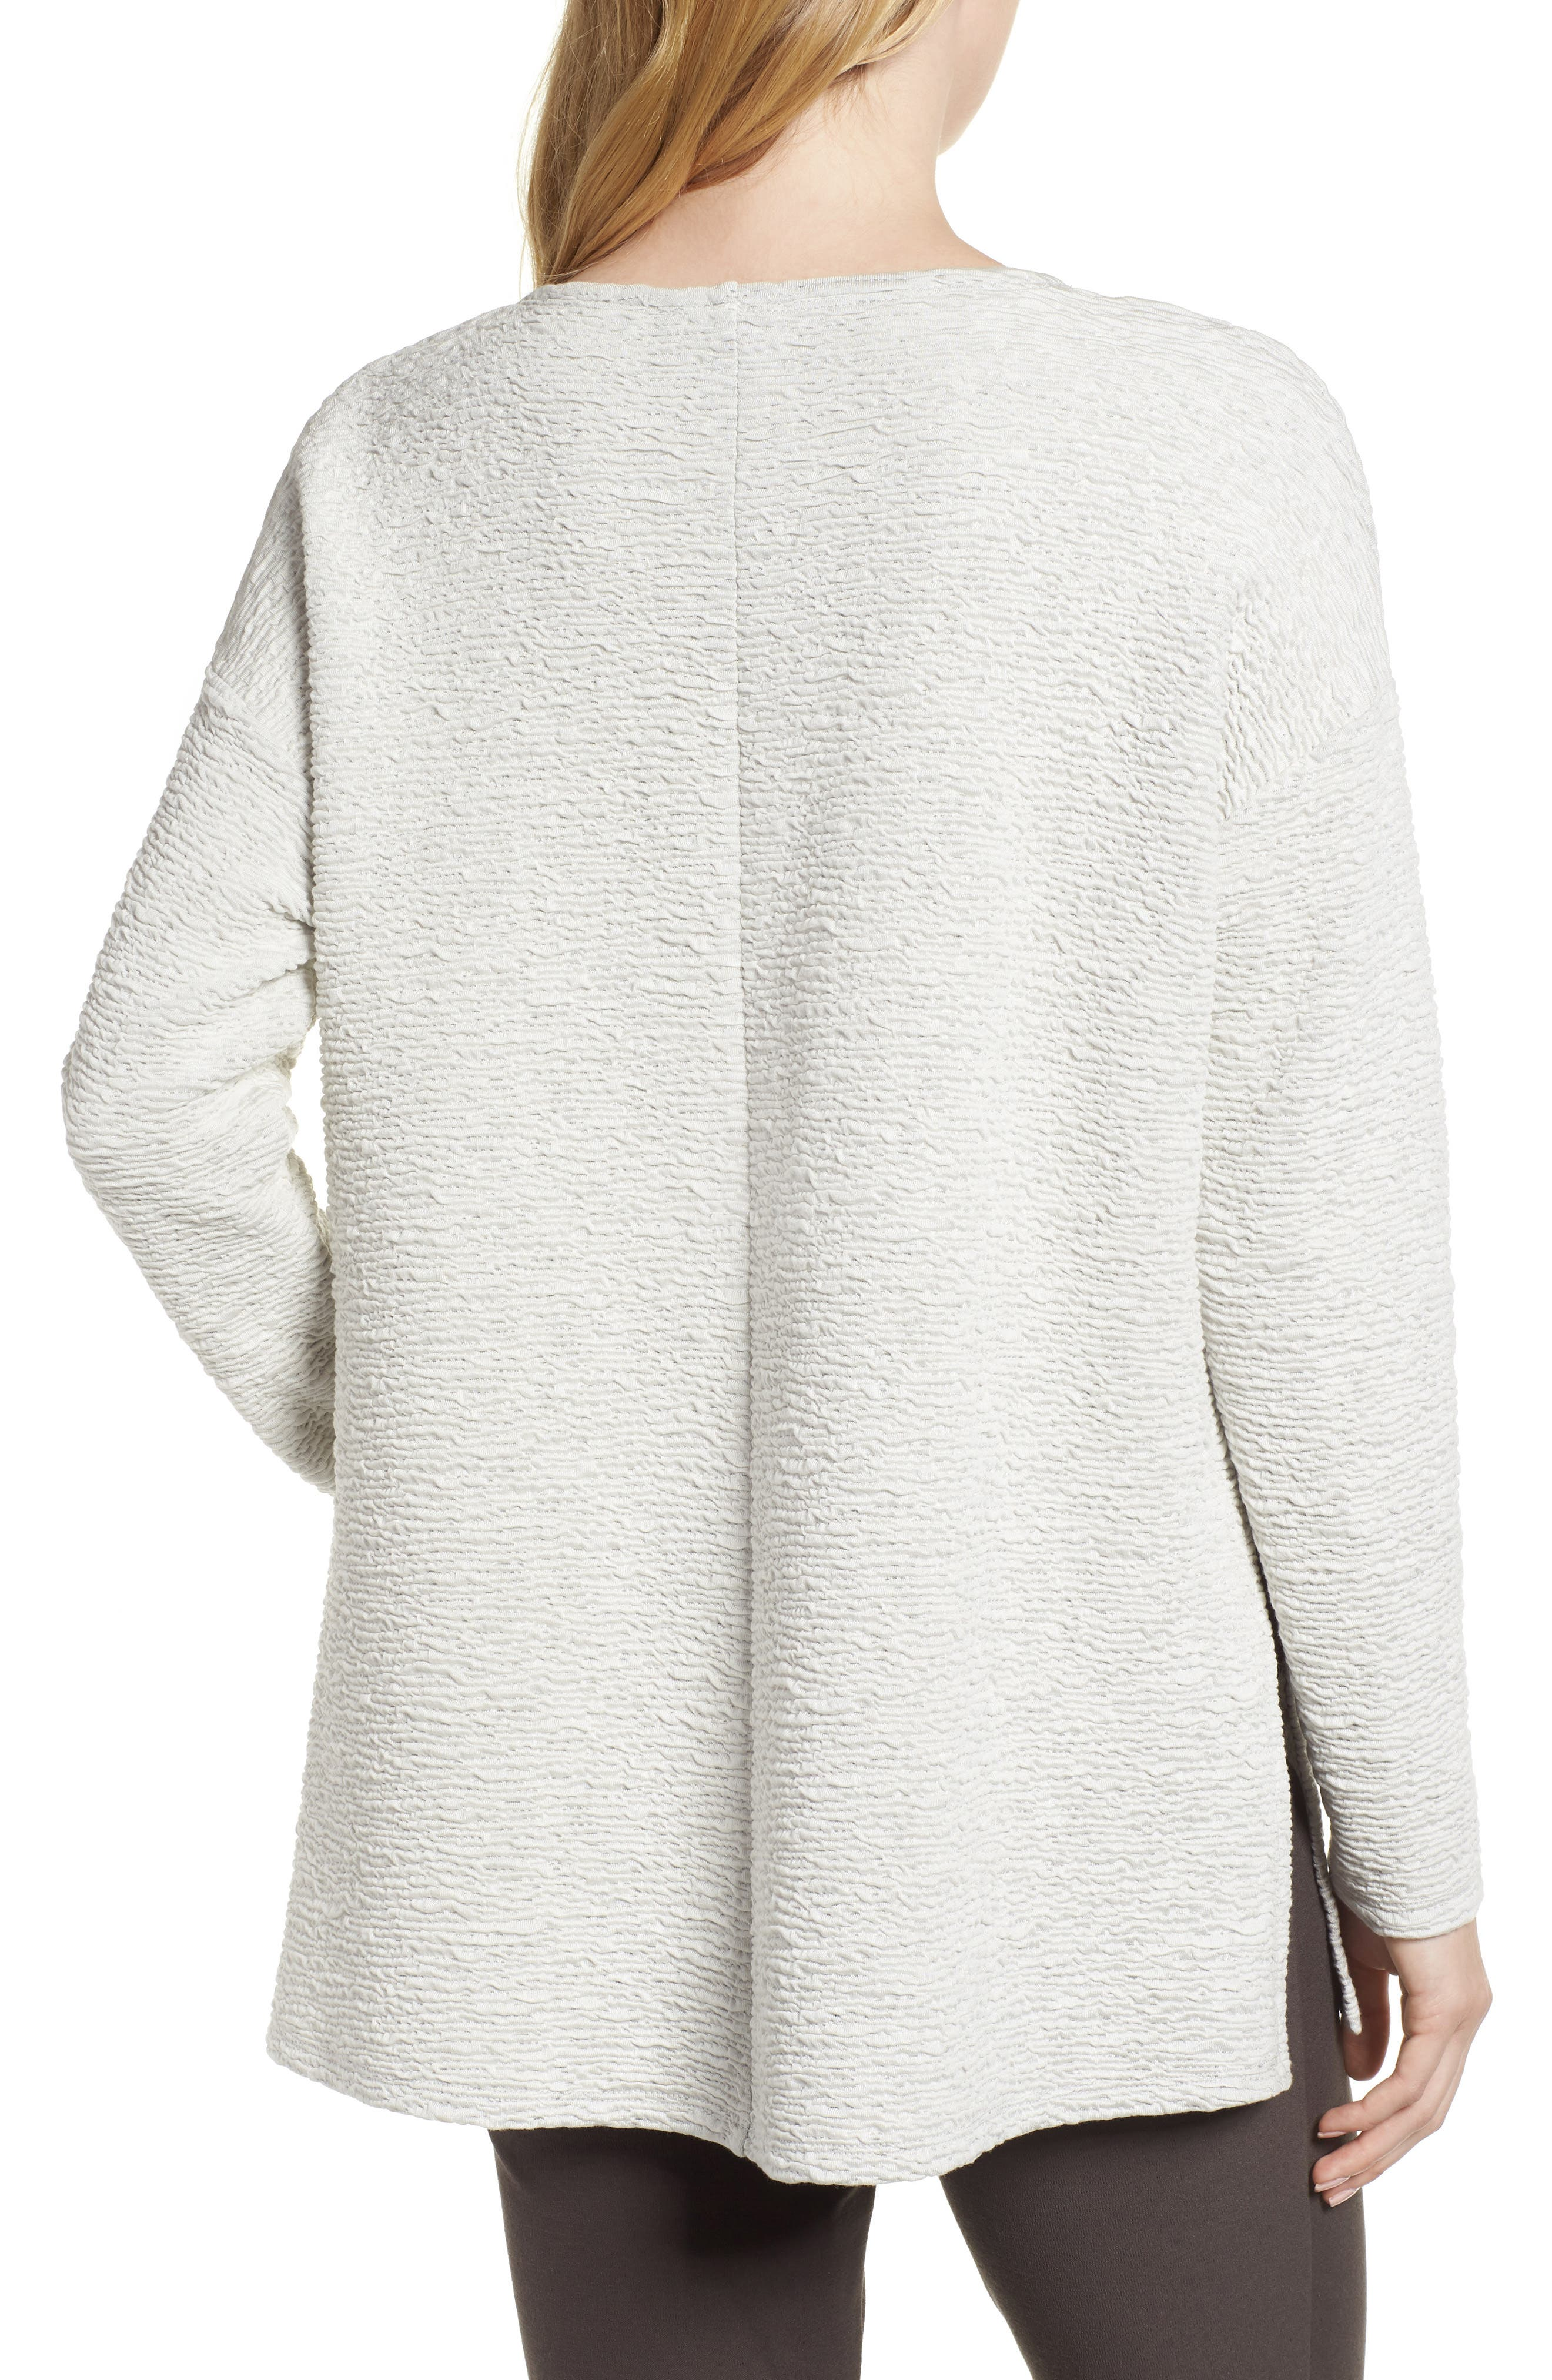 Textured Tencel<sup>®</sup> Lyocell Blend Top,                             Alternate thumbnail 2, color,                             100